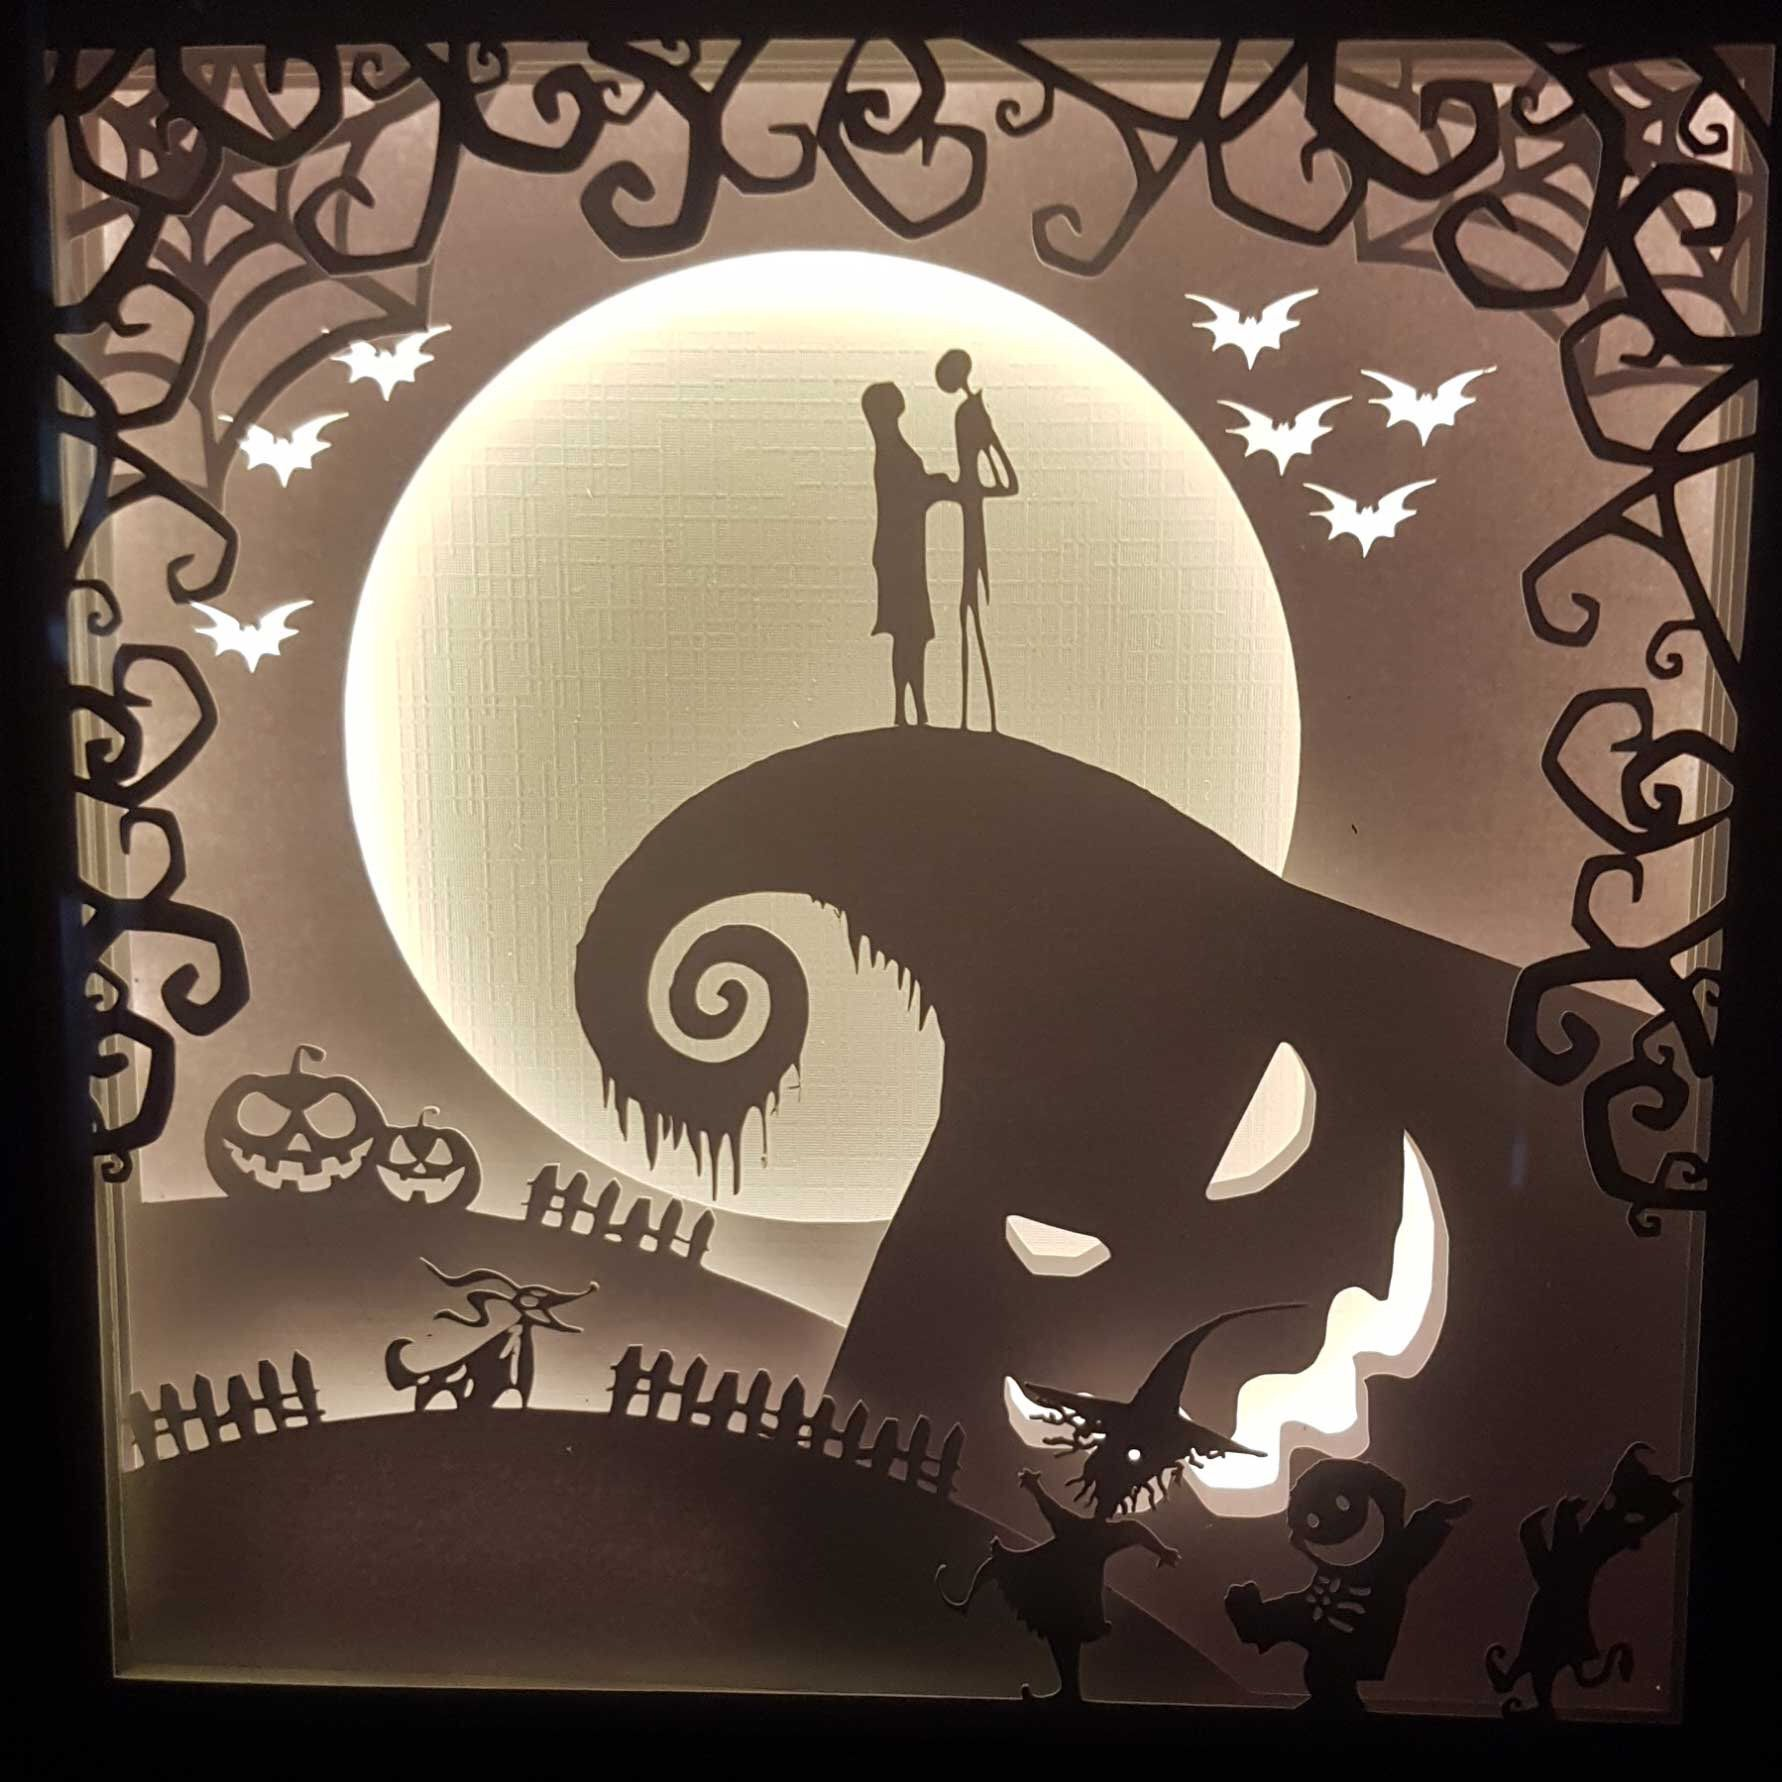 Download Nightmare Before Christmas Svg Images Free Svg Cut Files ...